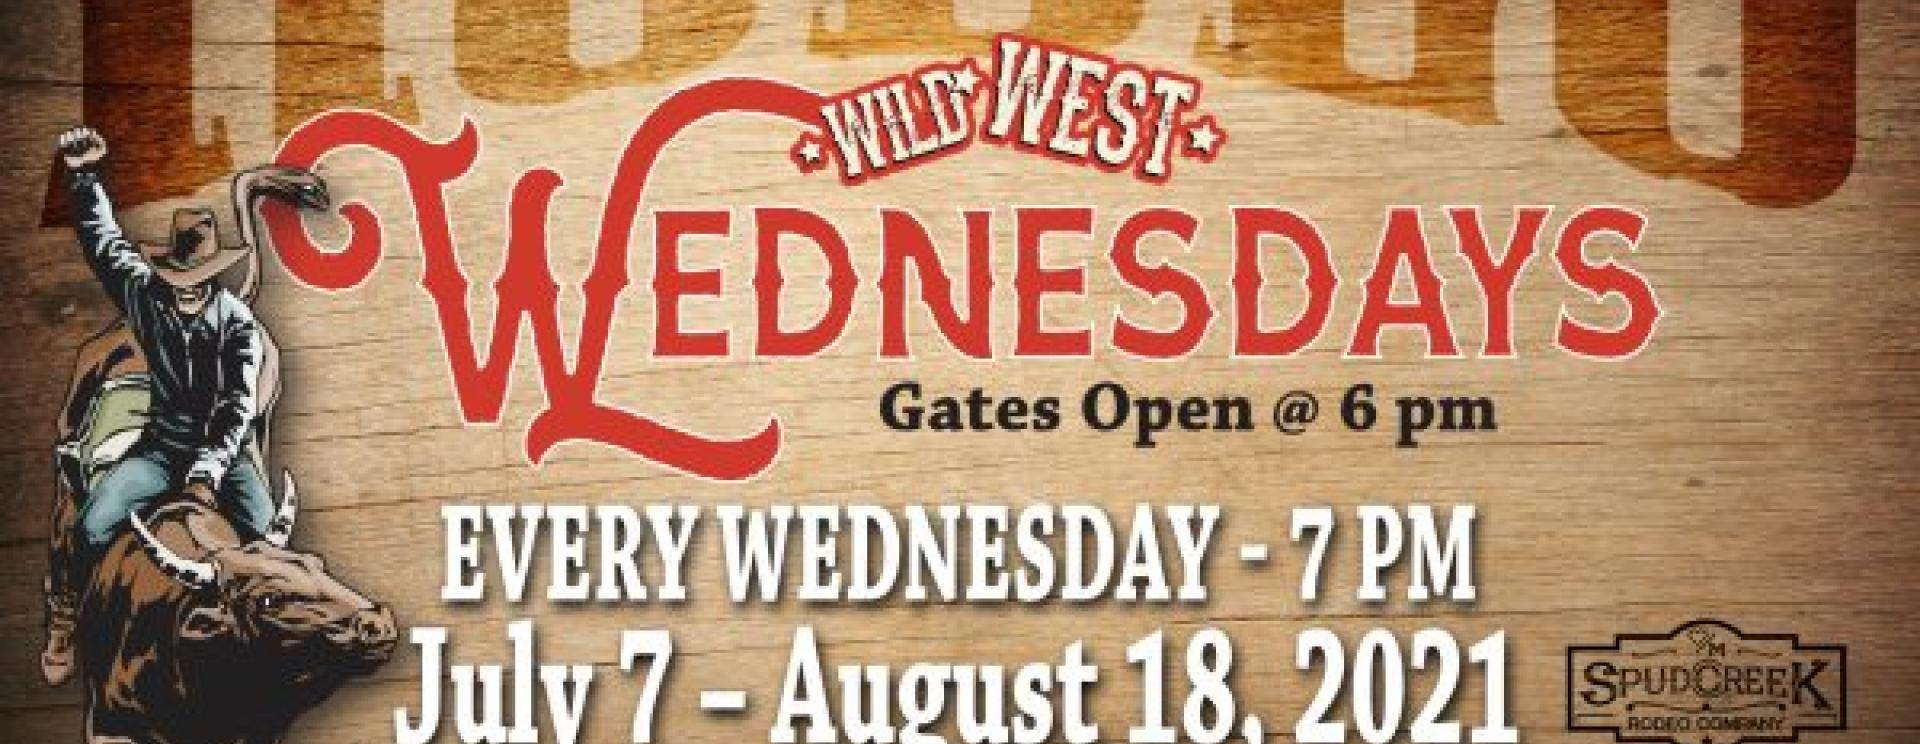 Wild West Wednesdays Rodeos at Hart Ranch